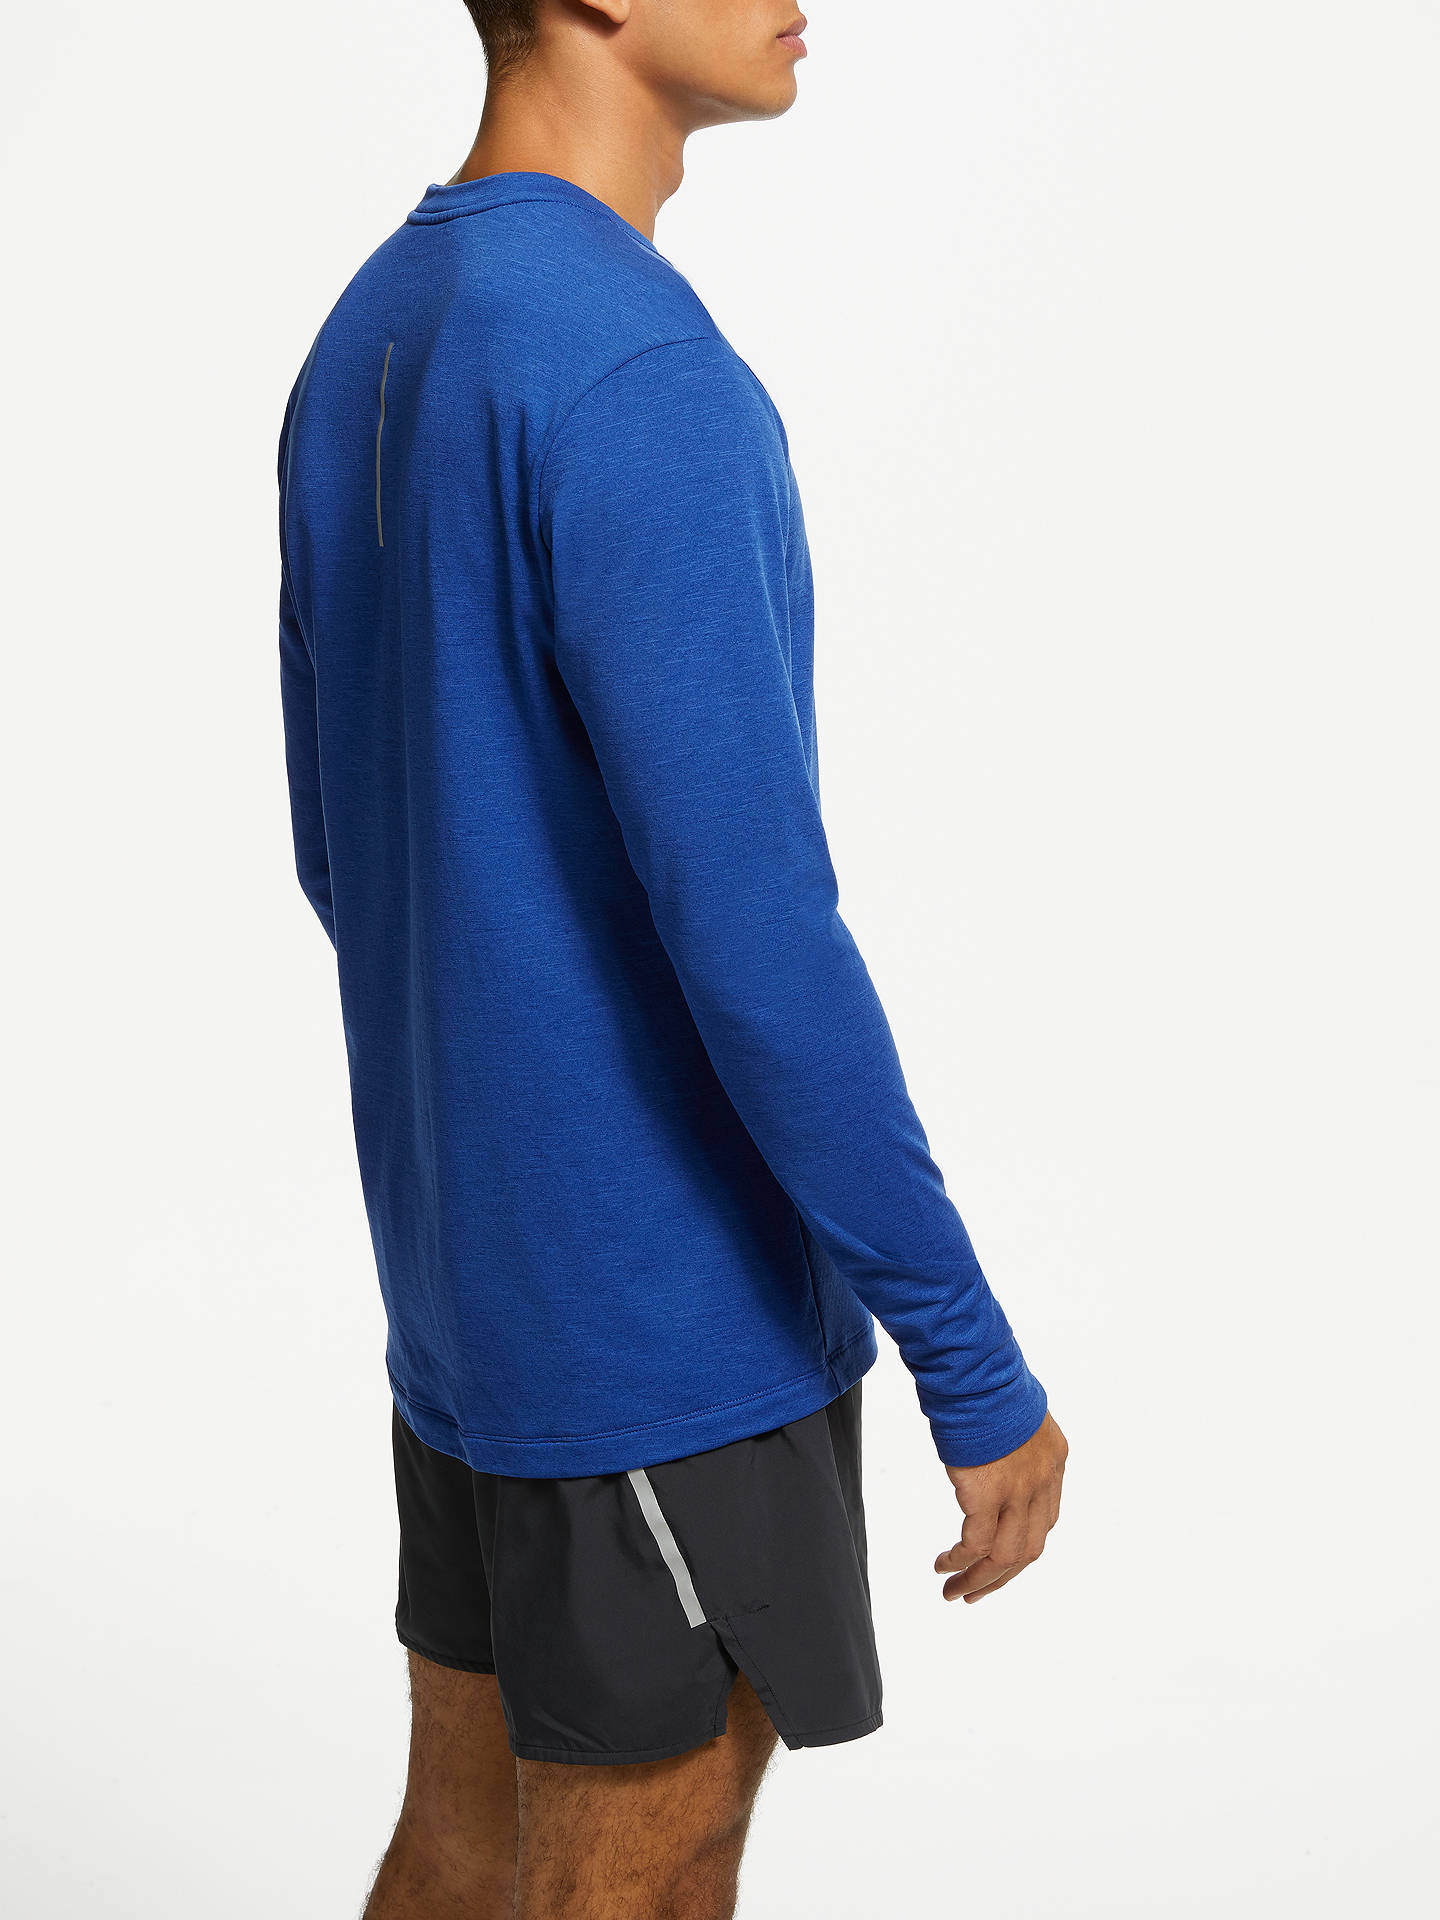 76f771f2 ... Buy Nike Therma Sphere Element 2.0 Long Sleeve Running Top, Blue Void,  S Online